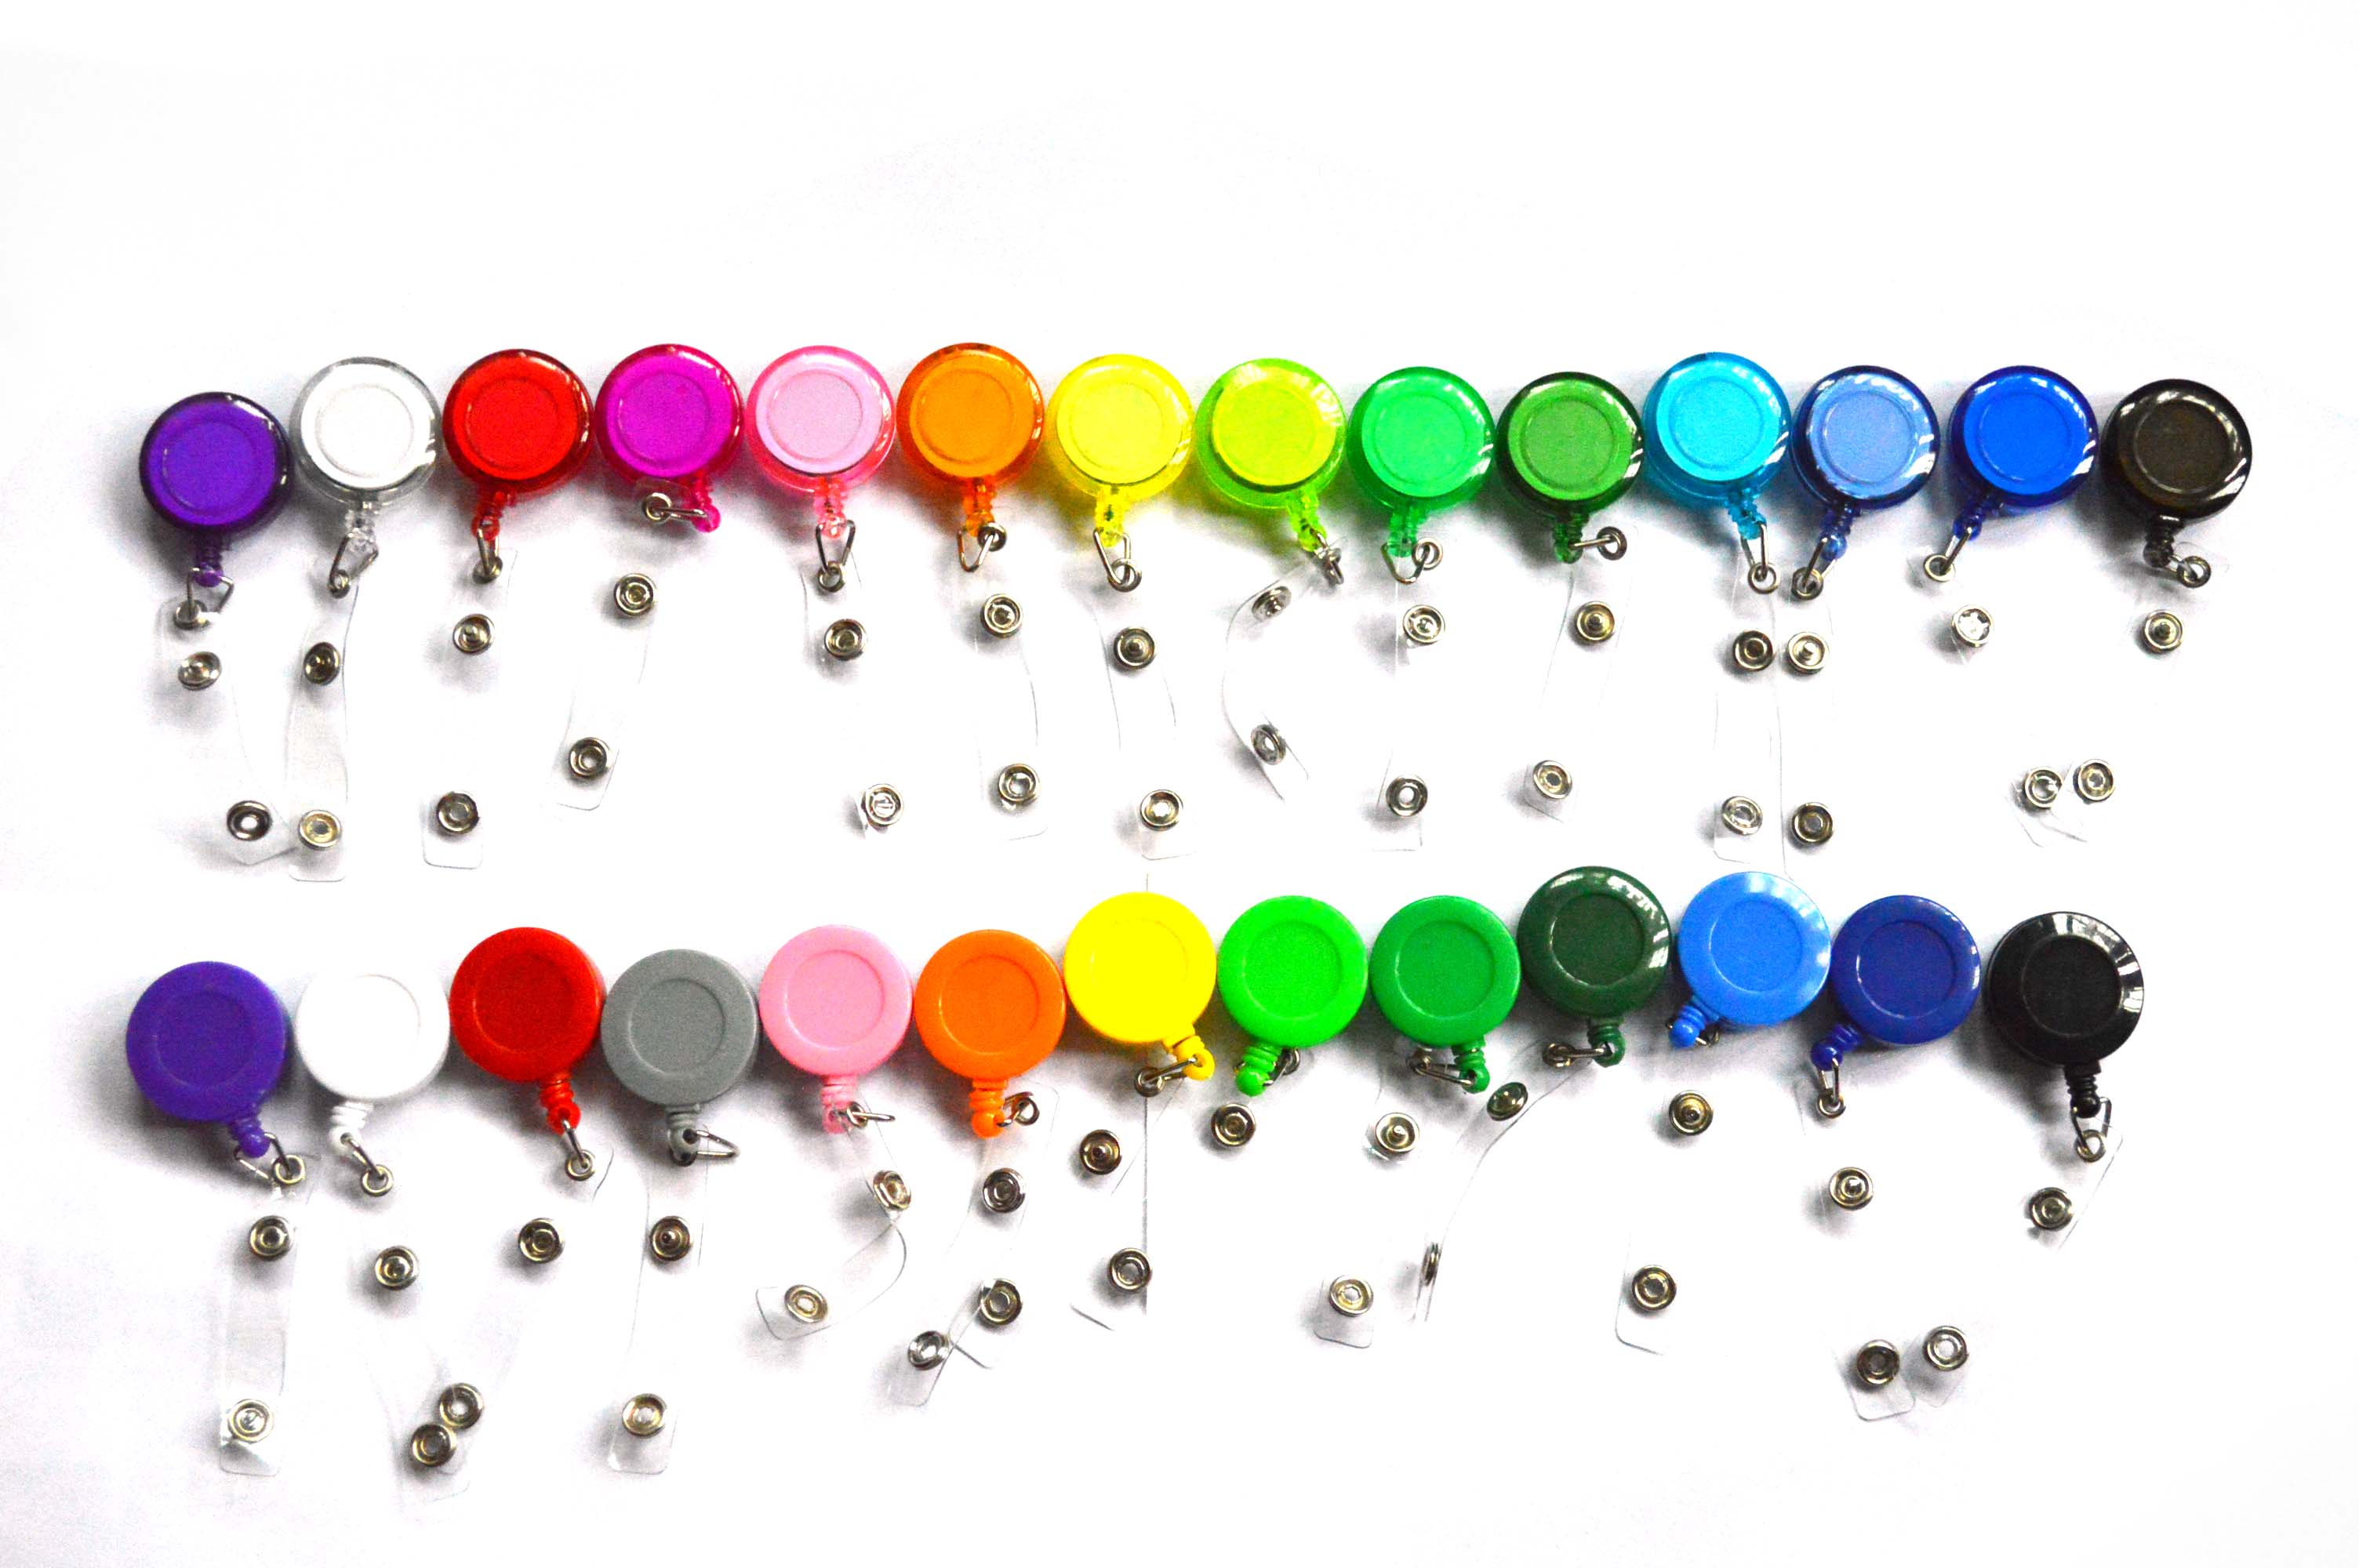 10pcs/lot 27 Colors Office & School Supplies Badge Holder Retractable Ski Pass ID Card Badge Name Tag Holders  Anti-Lost Clip